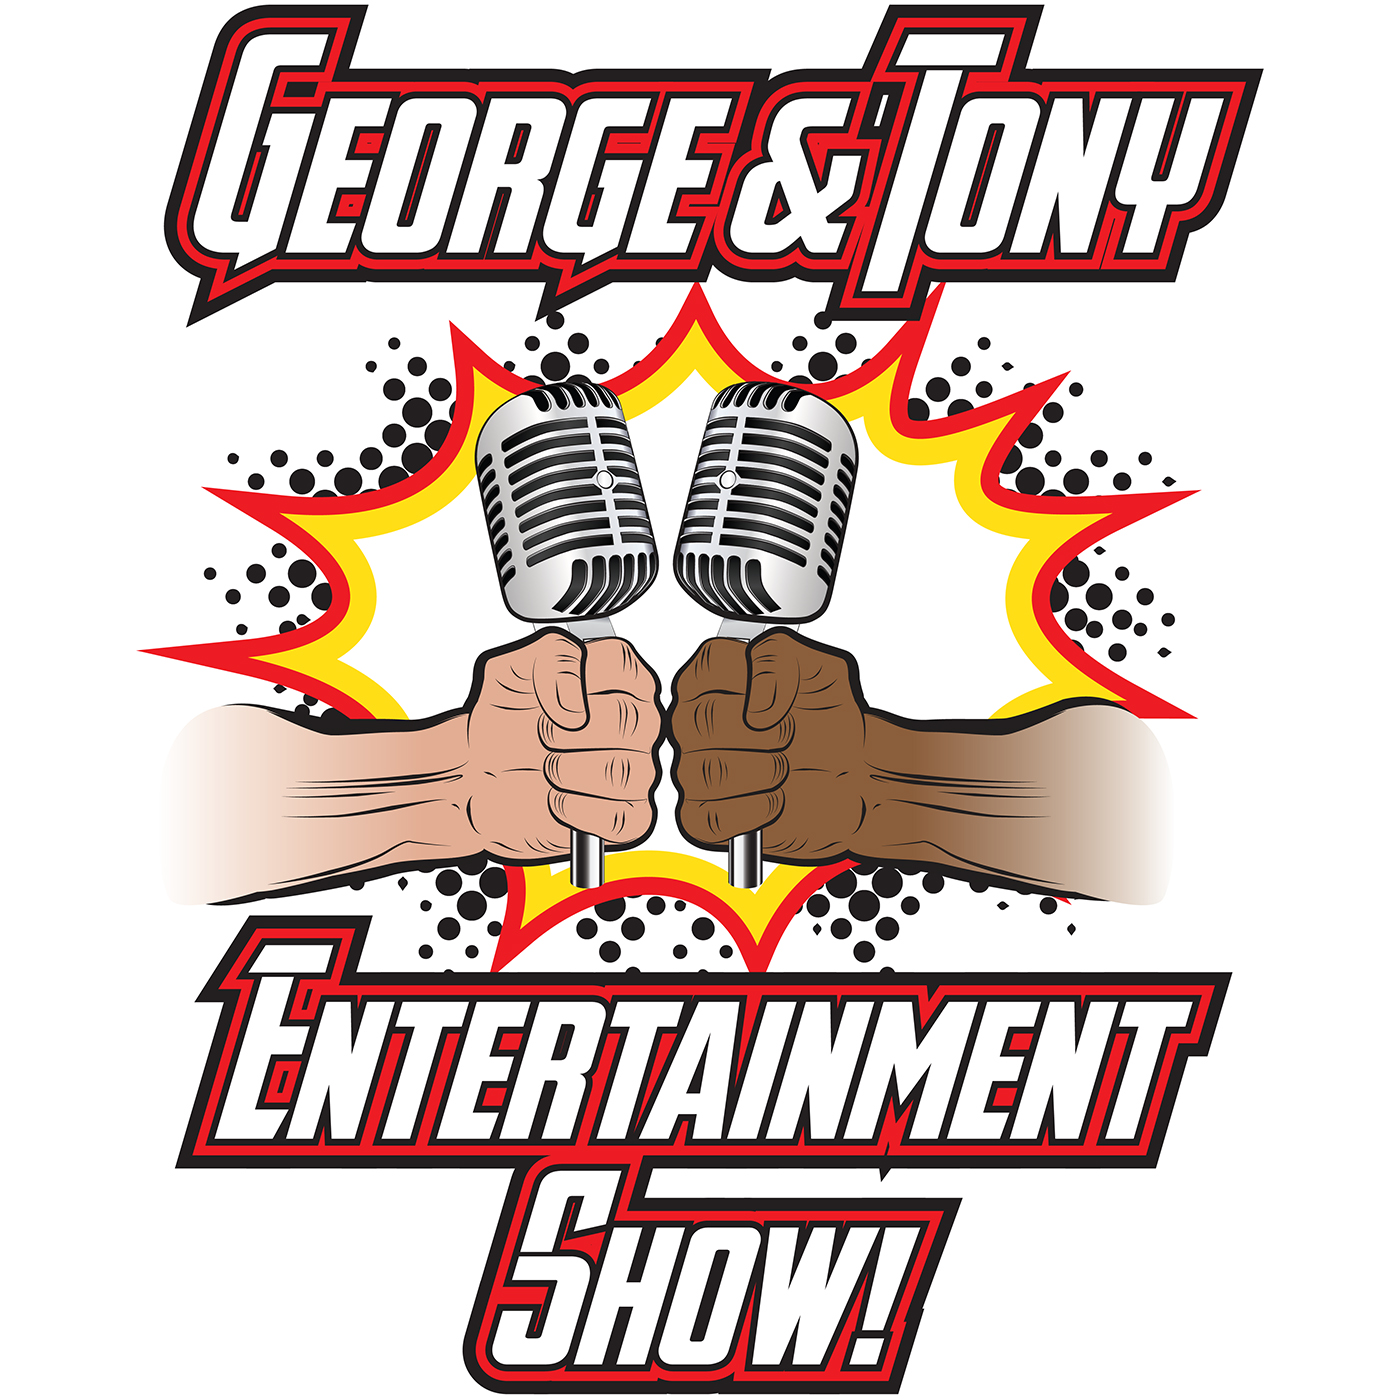 George and Tony Entertainment Show #130